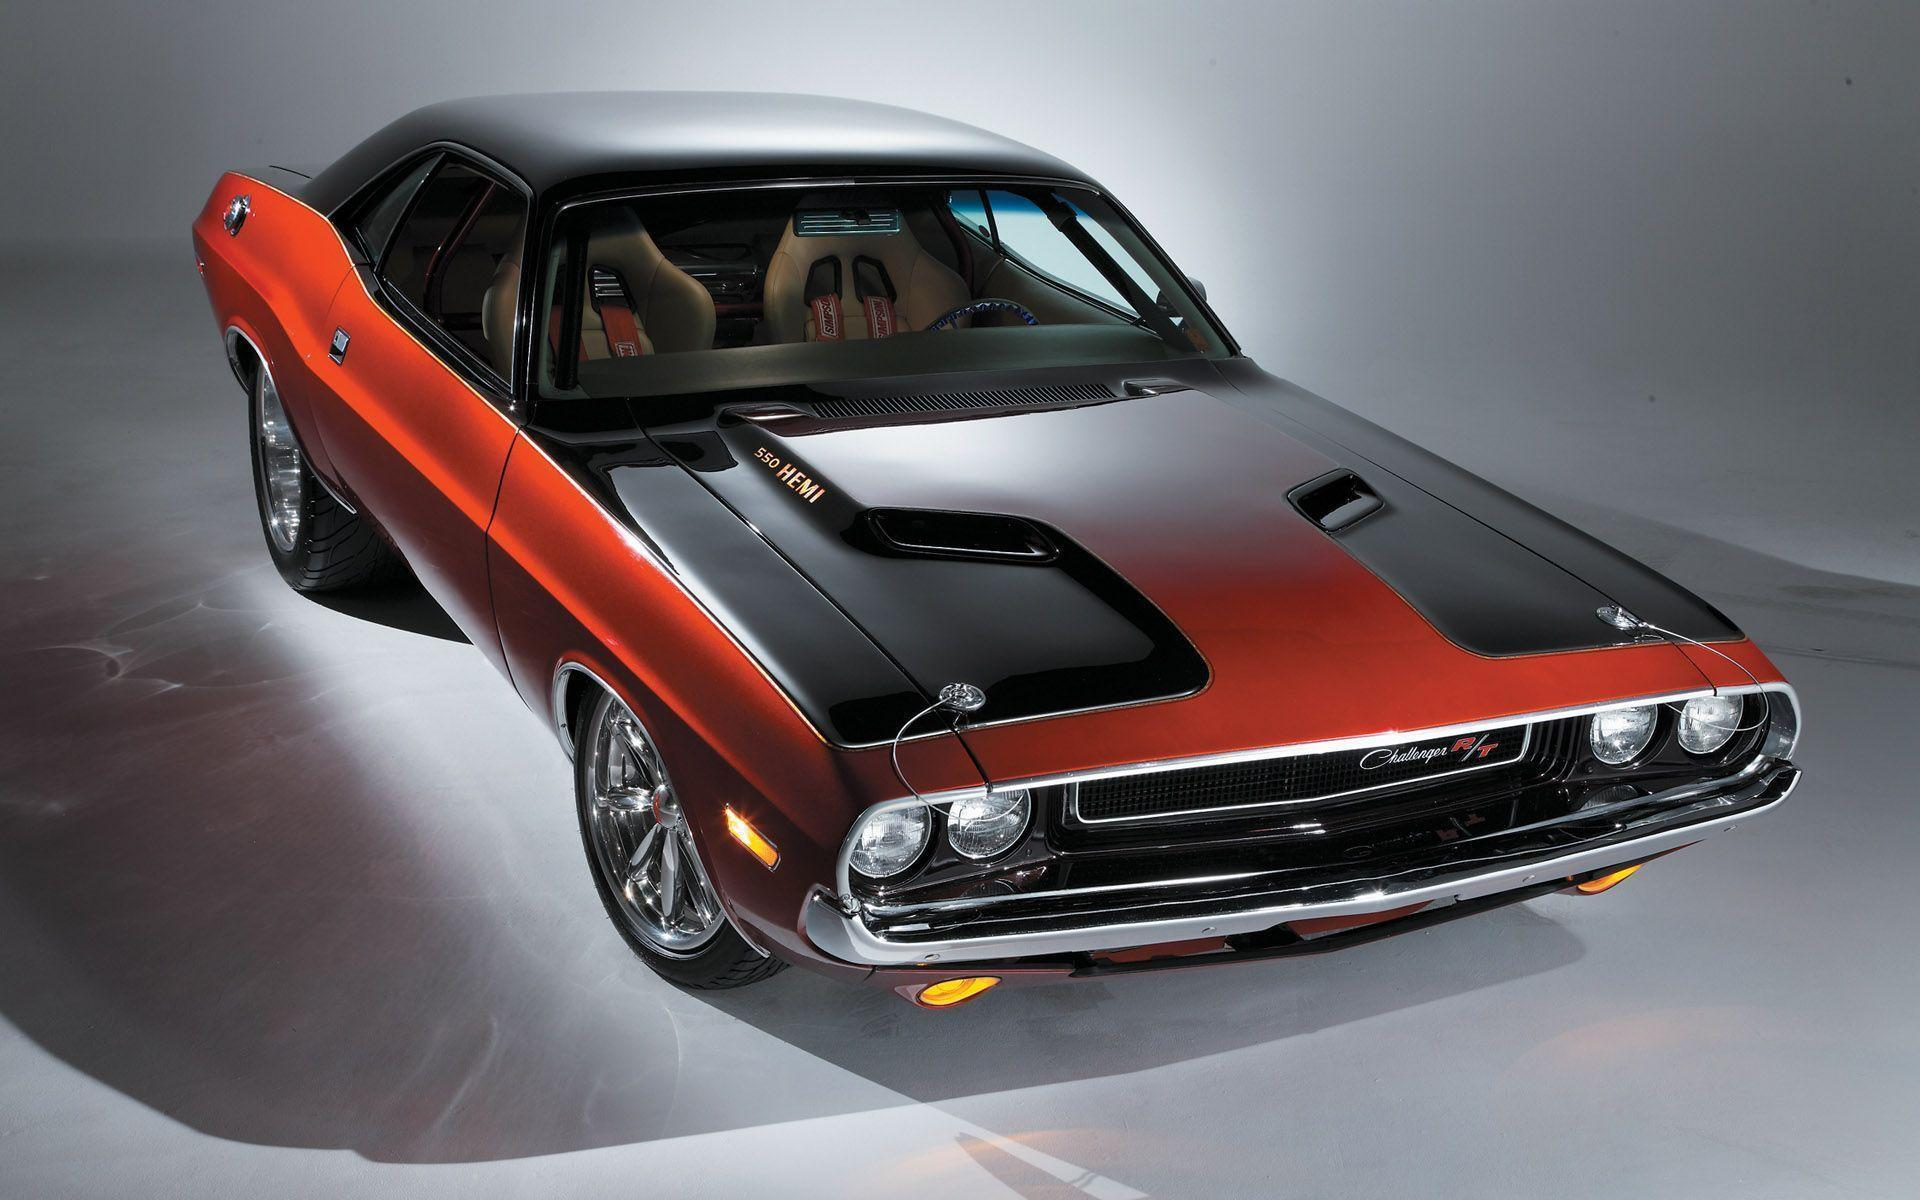 hemi muscle cars - photo #38